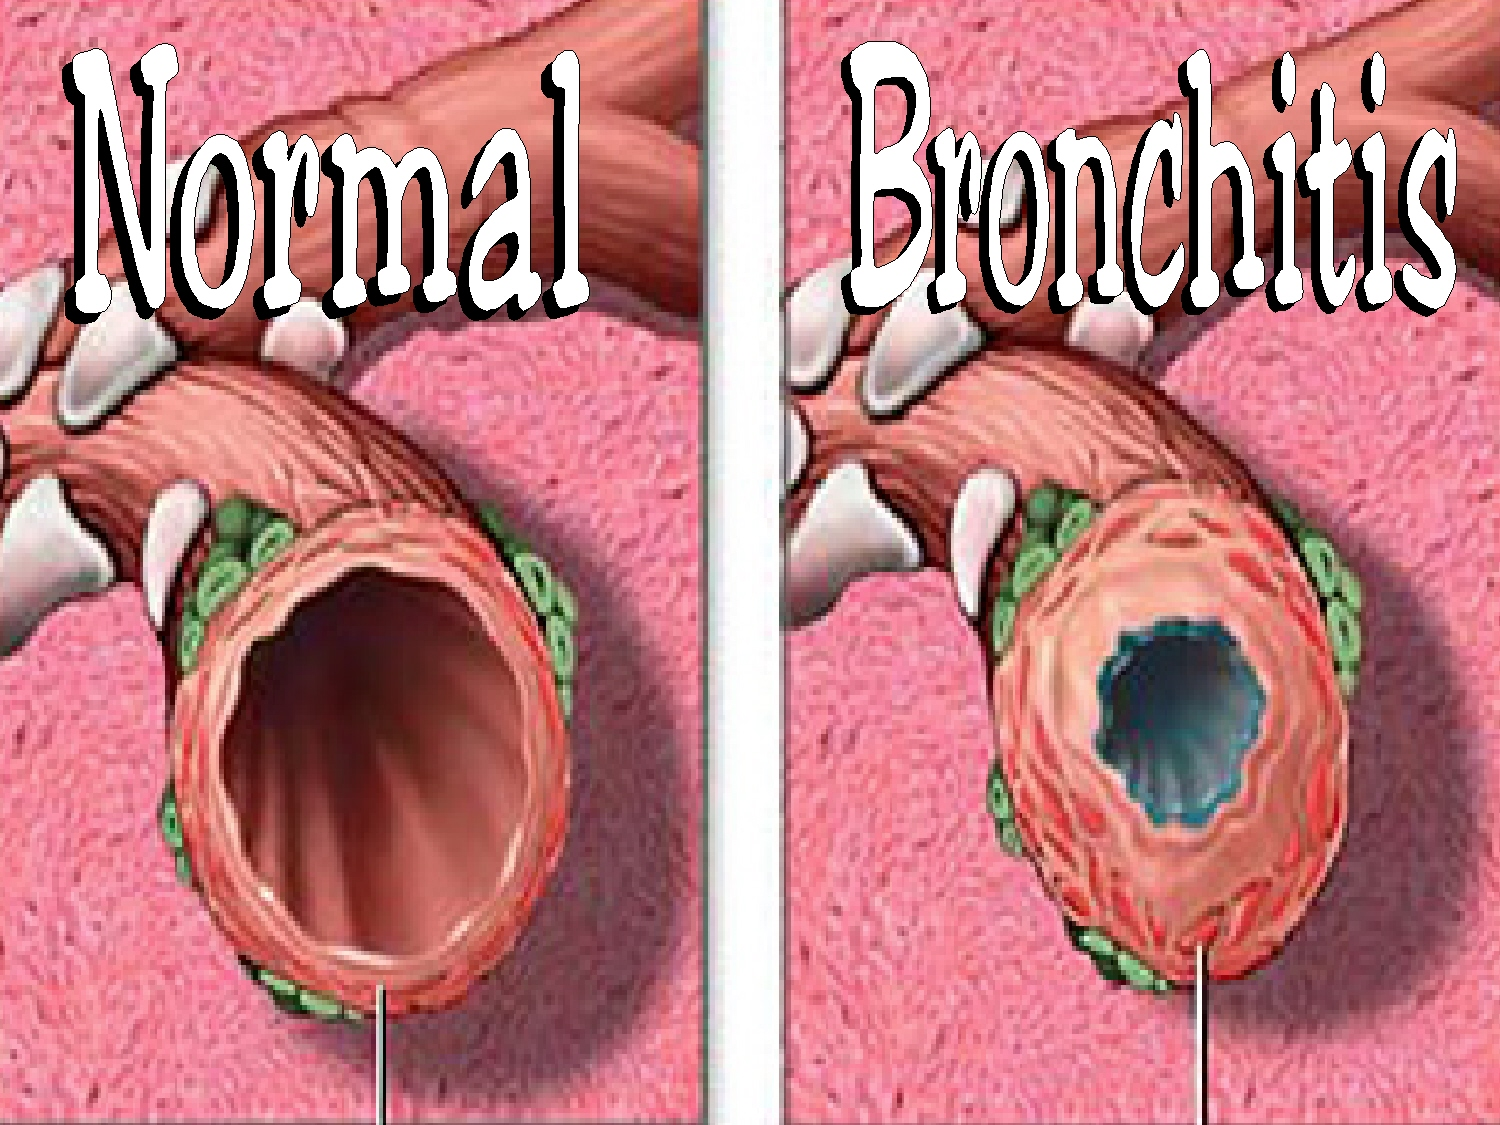 At issue – Bronchitis..